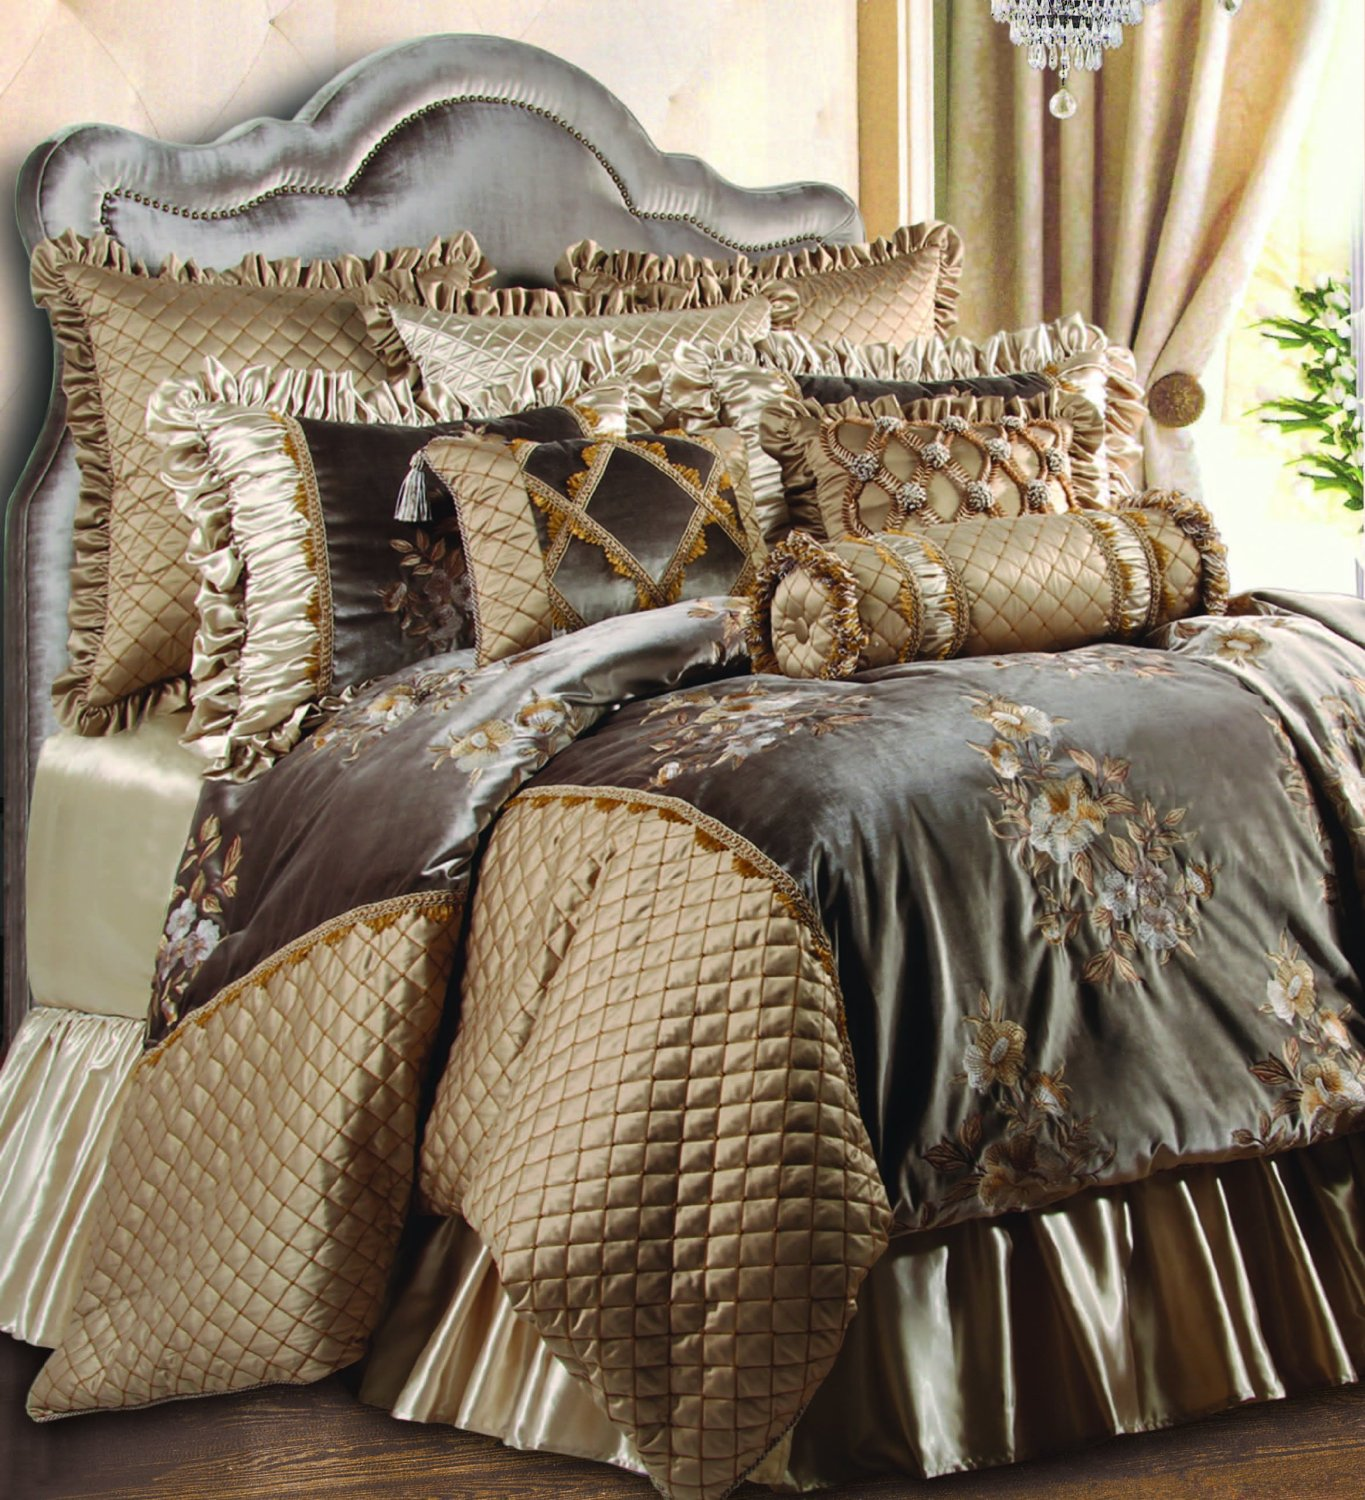 Luxury bedding for Your Home | Chevron Bedding